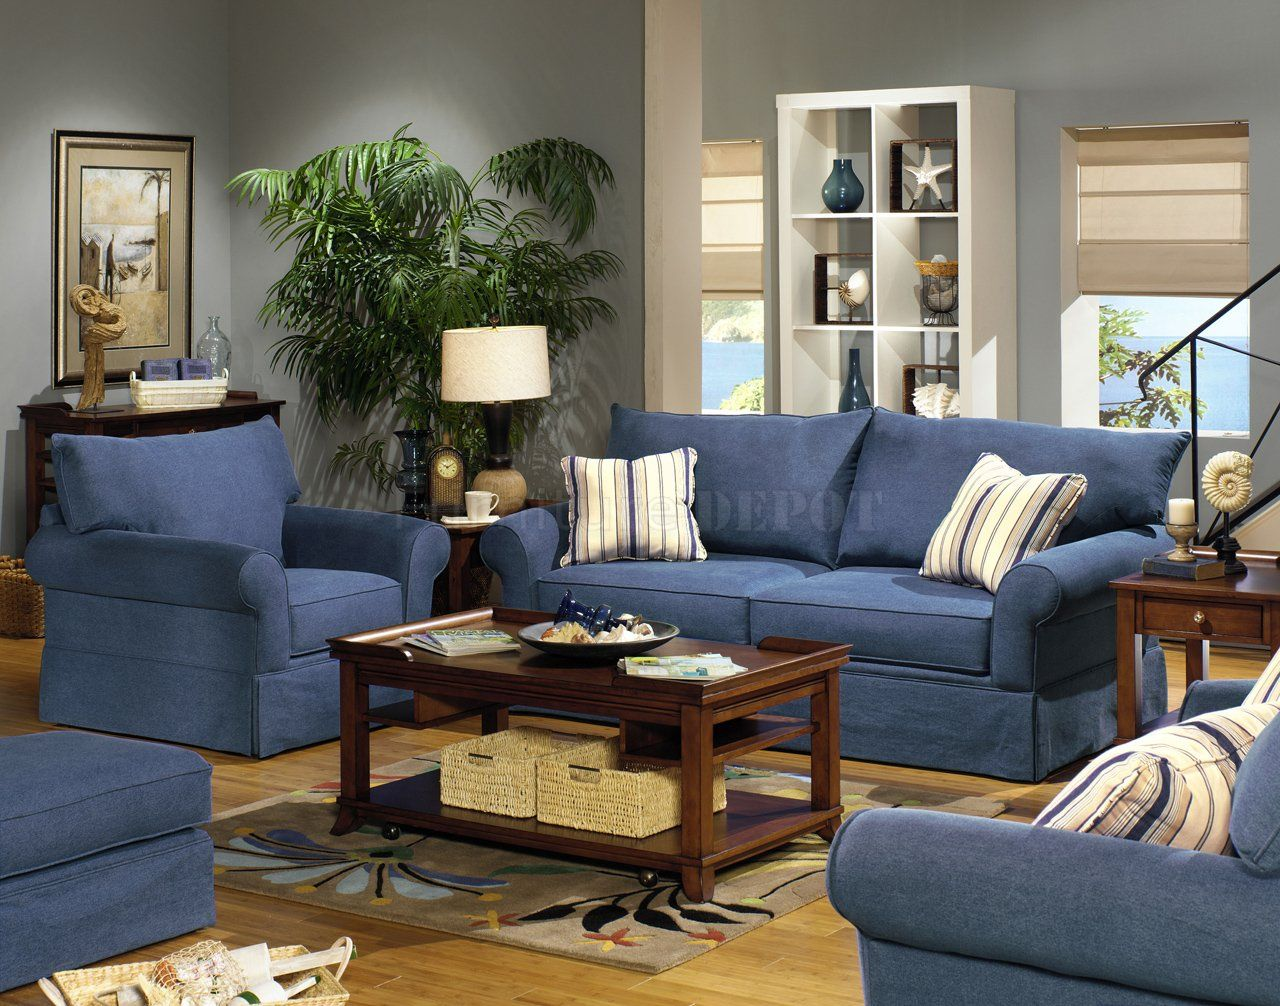 Denim Blue Sofas For Uniquely Timeless Look In Your Living Space Blue Couch Living Room Living Room Sets Furniture Blue Couch Living